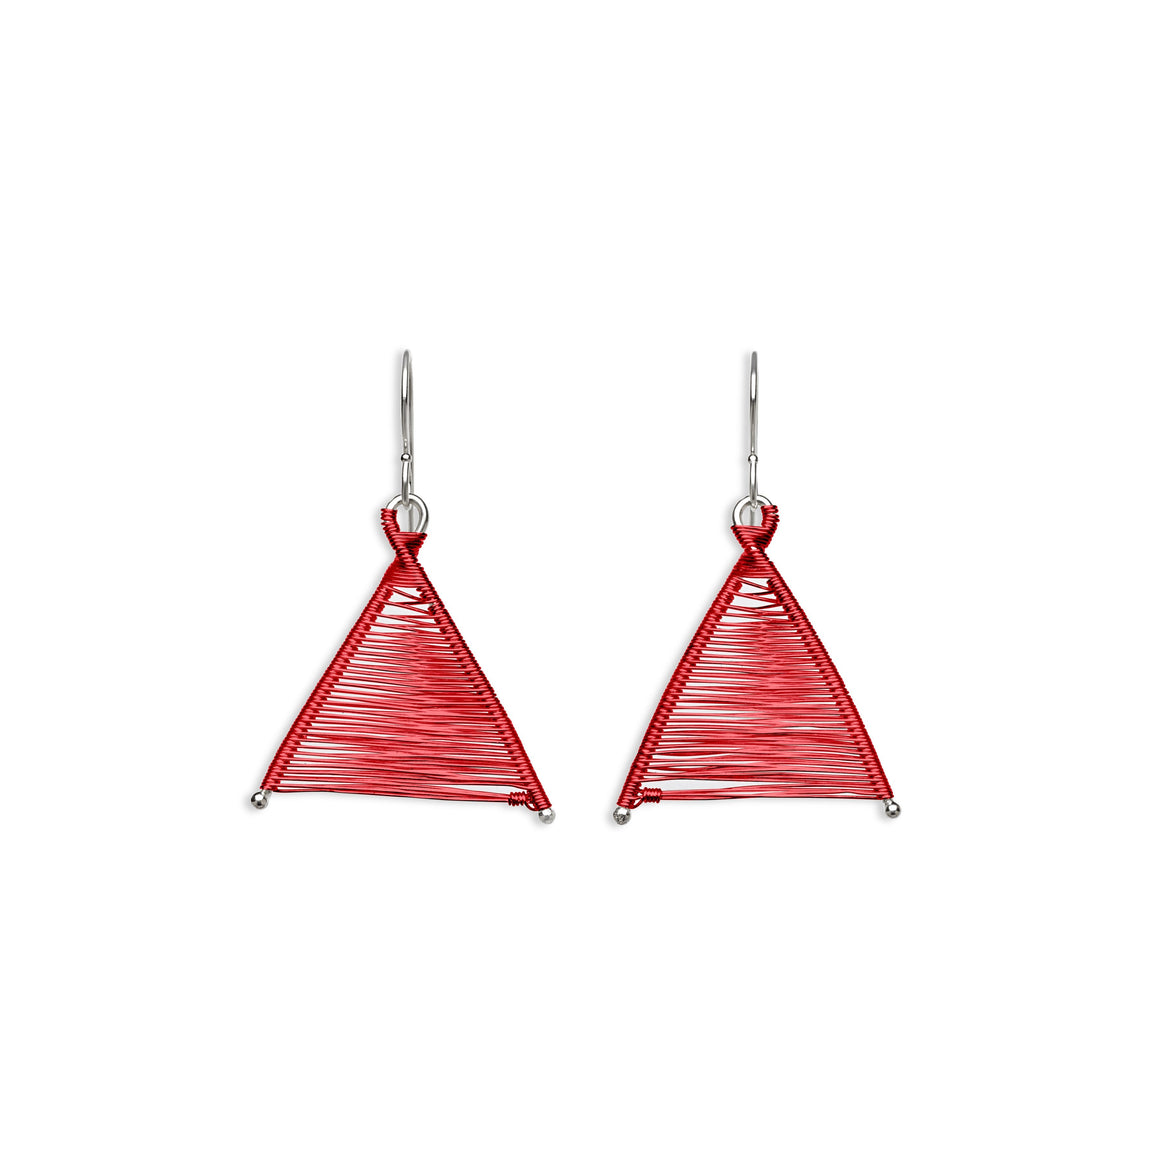 Original Sin Jewelry's Handmade Woven Wishbone Red Copper and Silver Dangle Triangle Mixed Metal Earrings